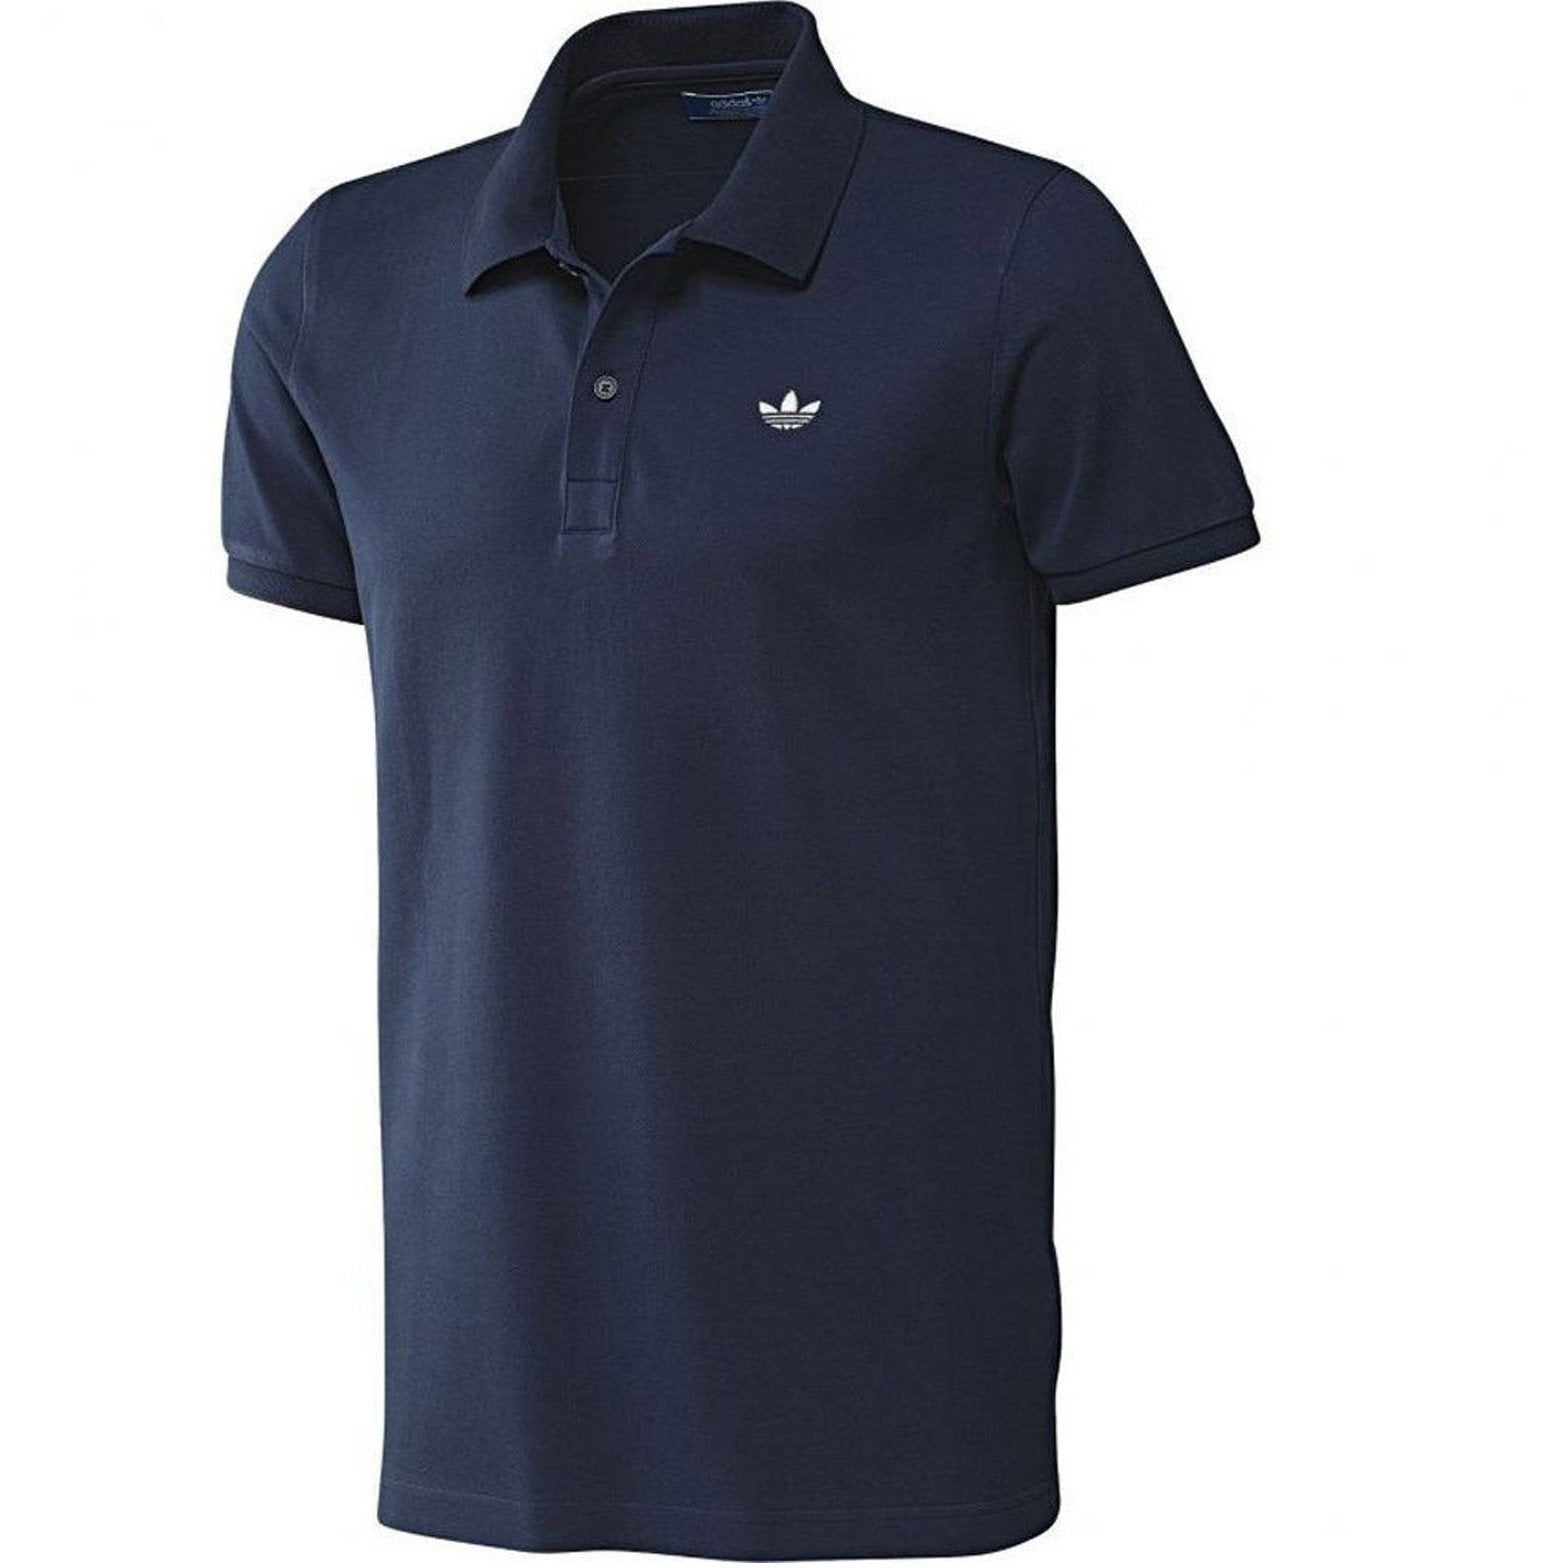 Adidas Polo Shirts - Navy